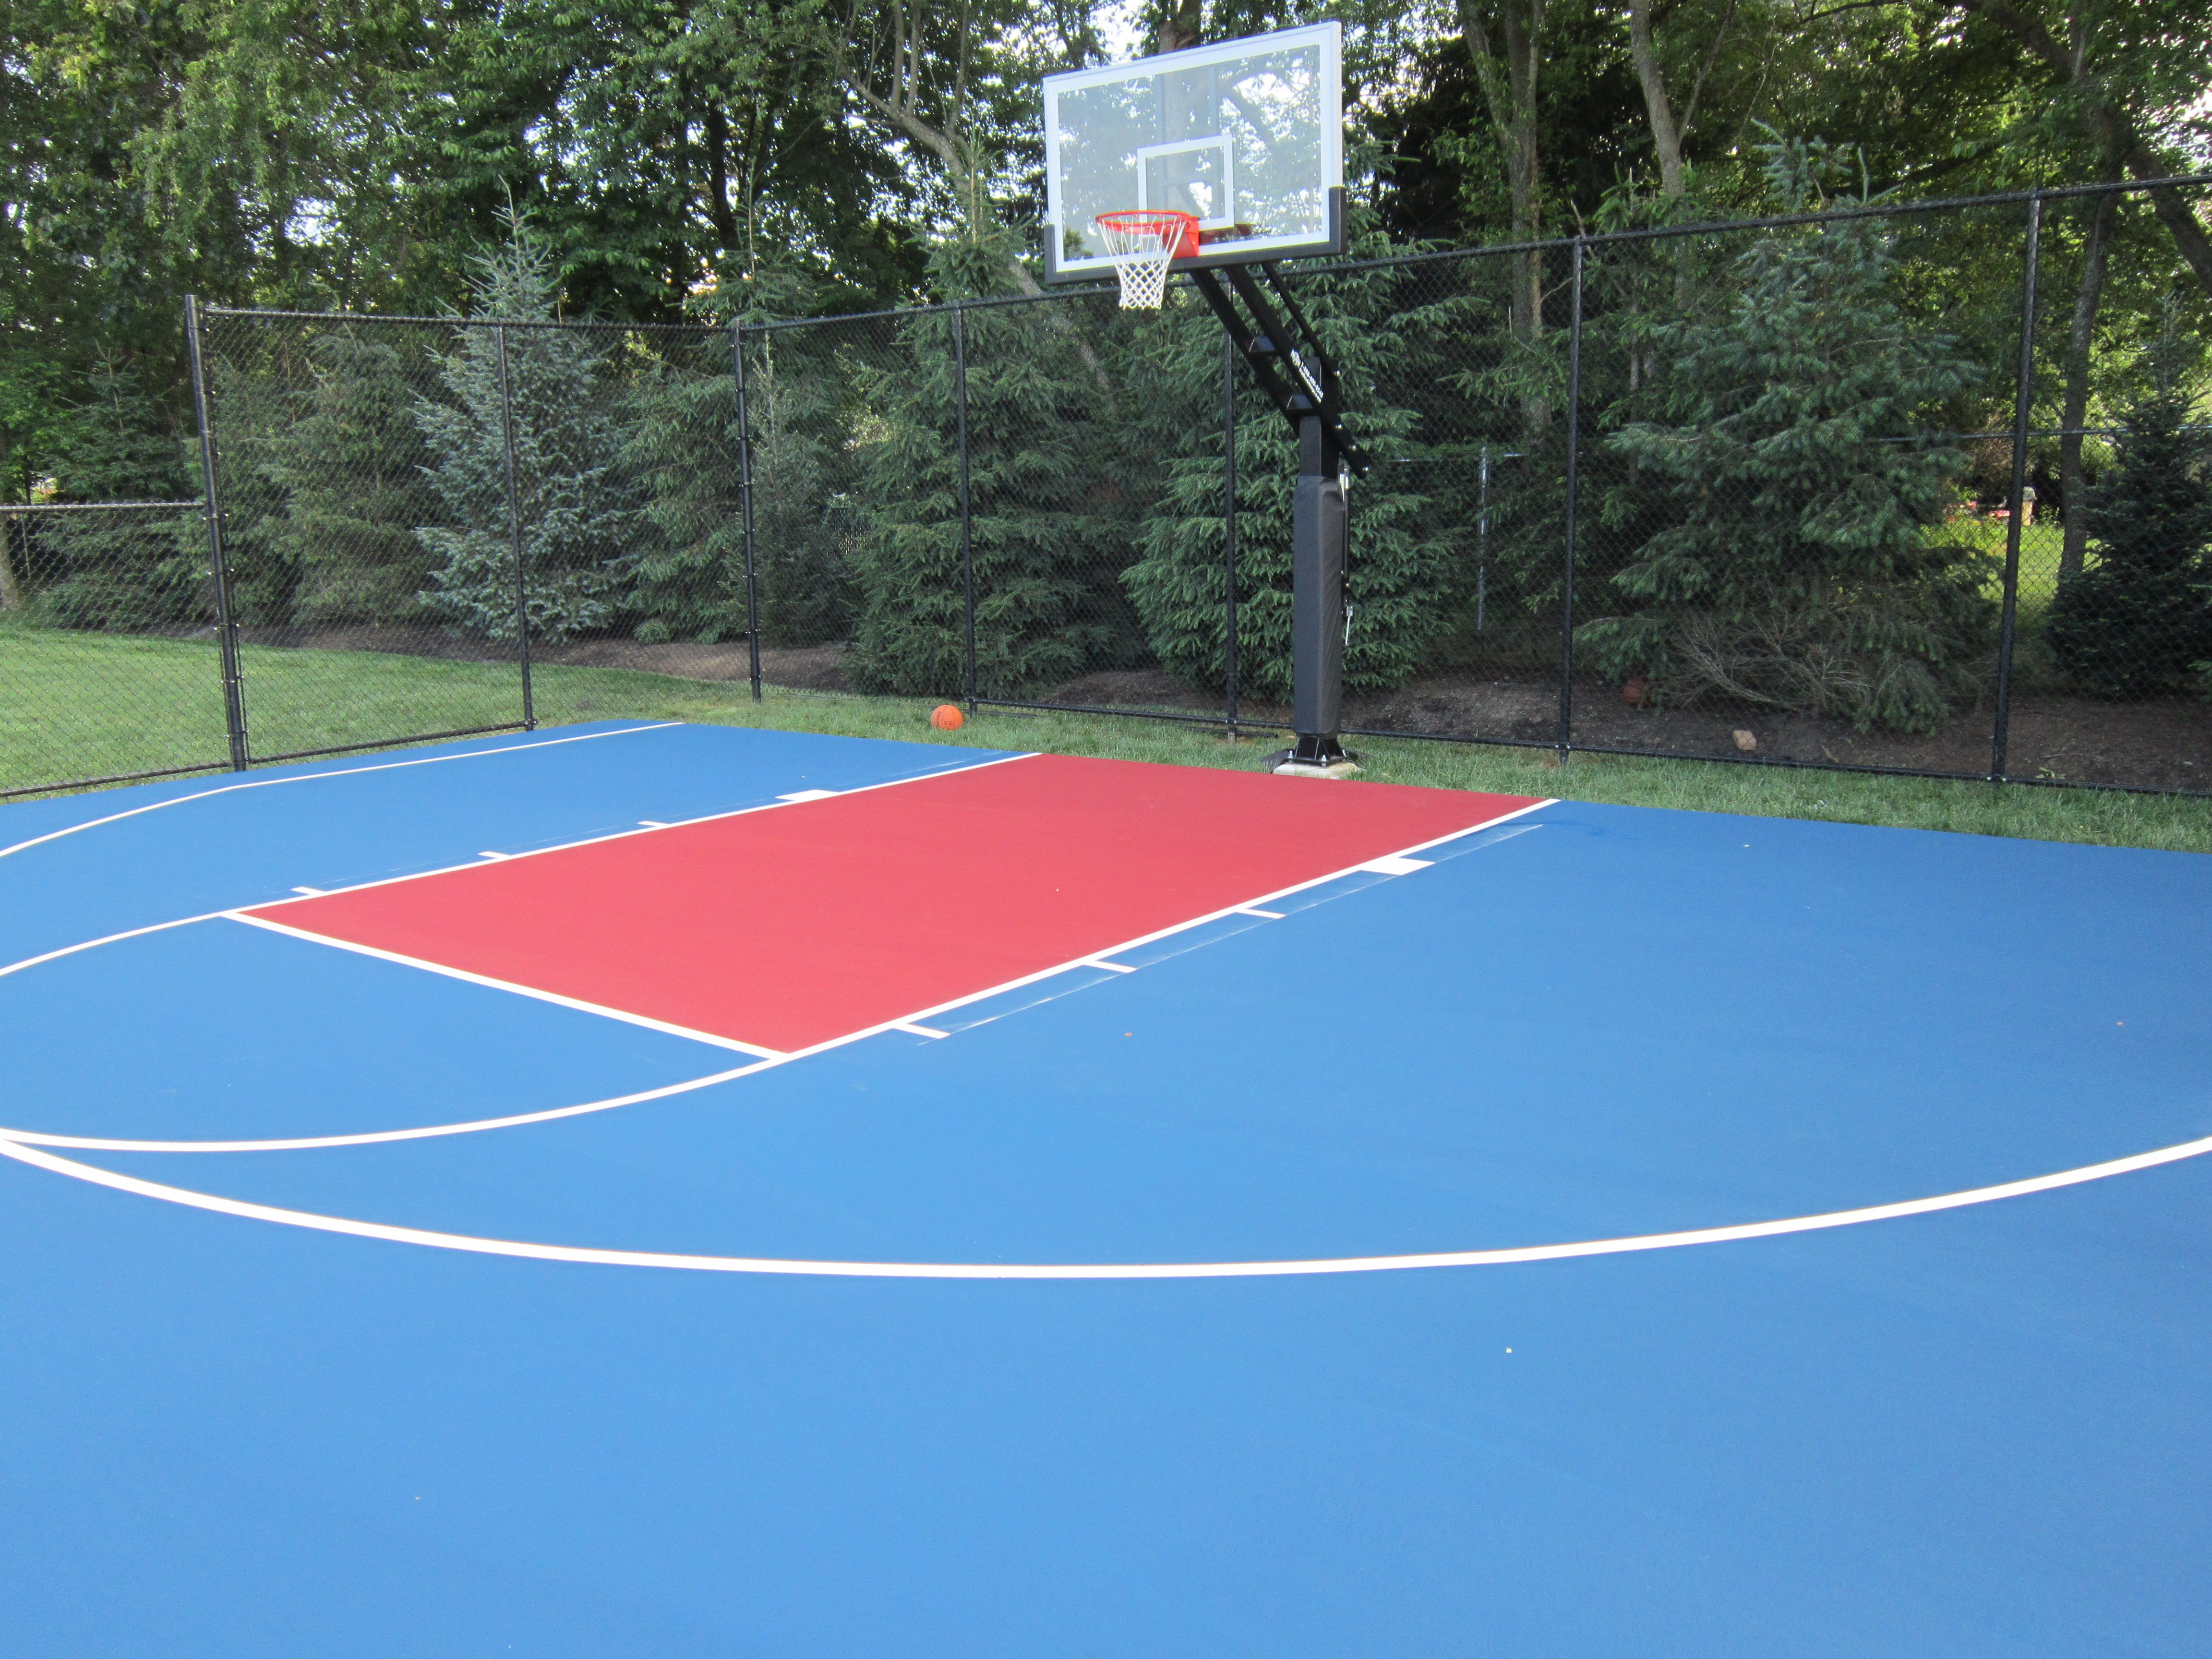 this is a royal blue and red backyard asphalt basketball court we